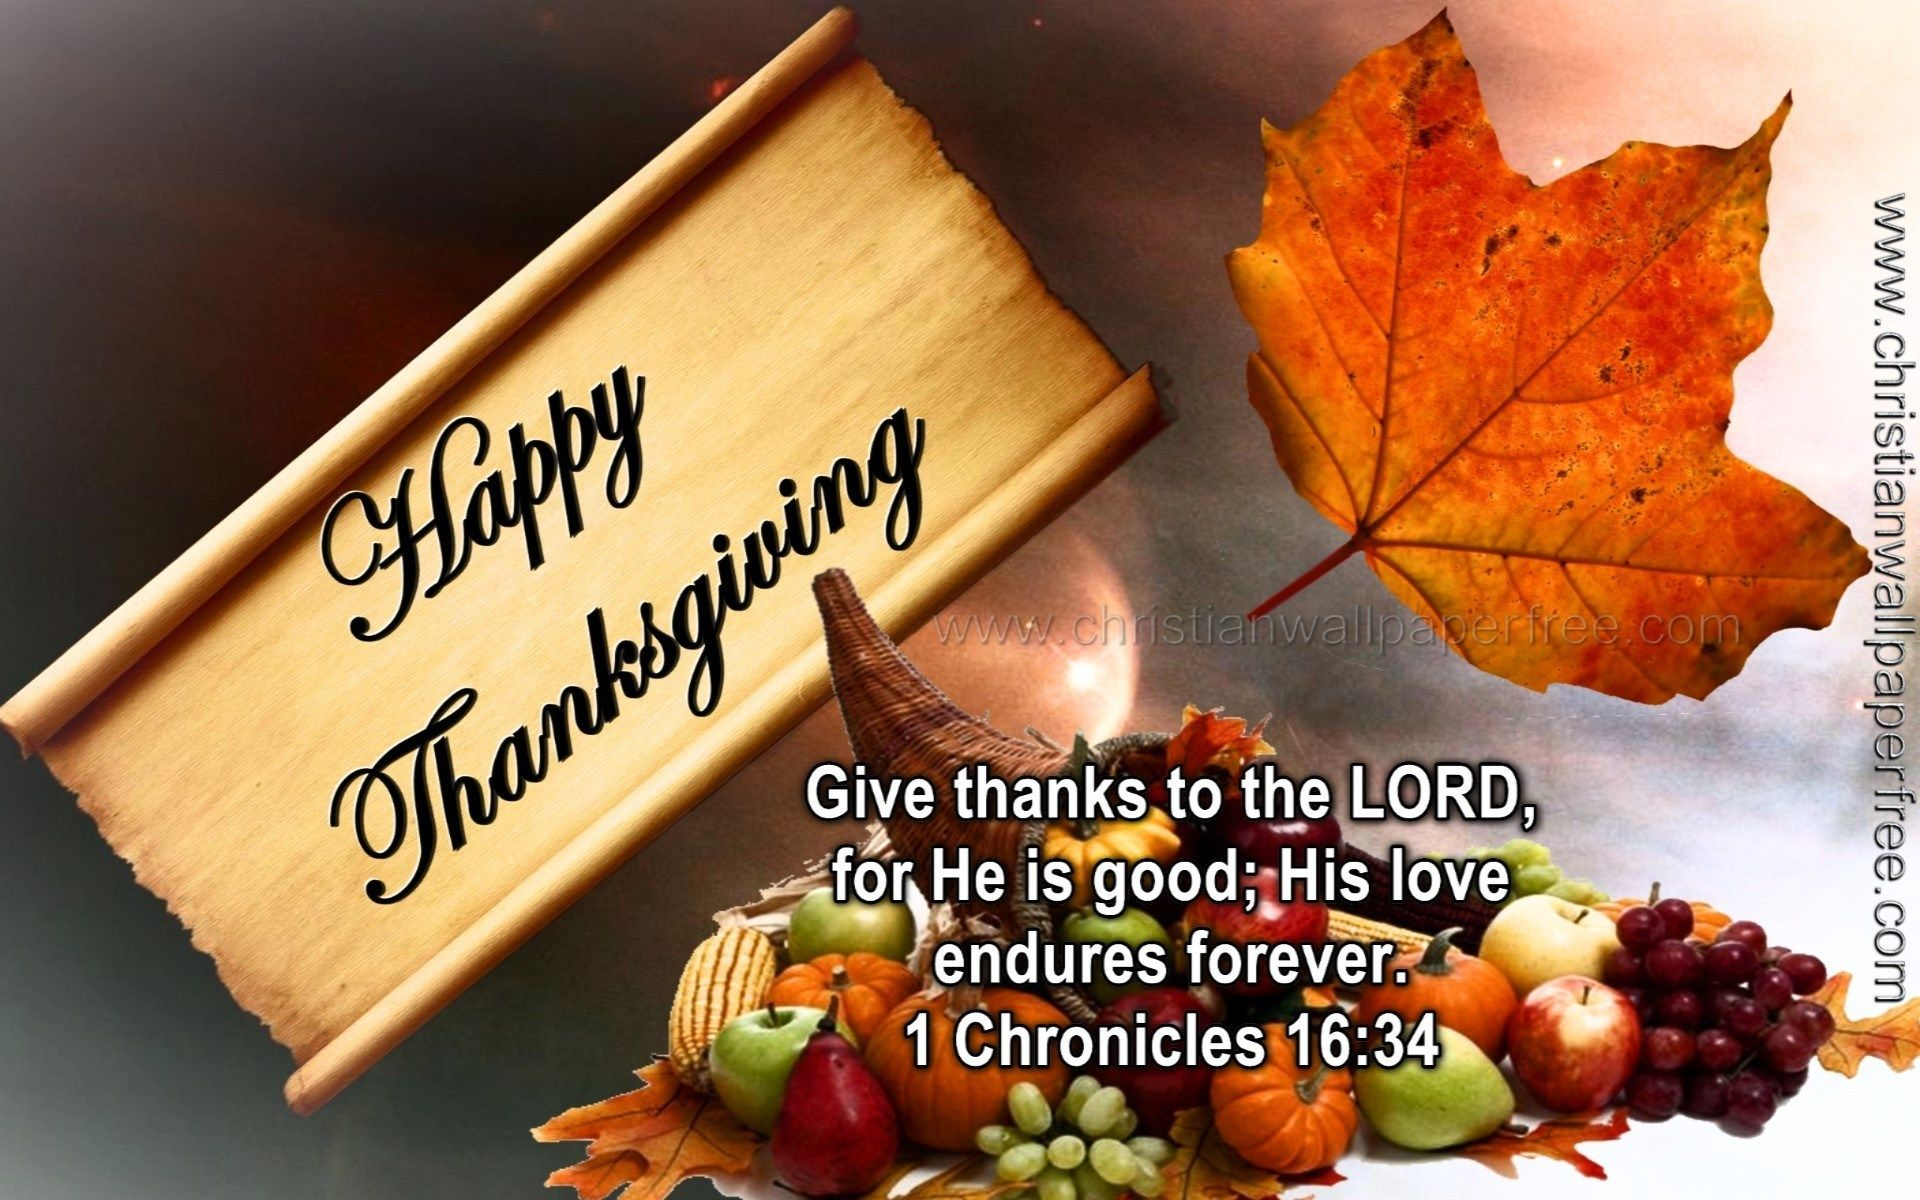 Pin By Anthony Norton On The Light In 2020 Psalms Thanksgiving Wallpaper Christian Wallpaper